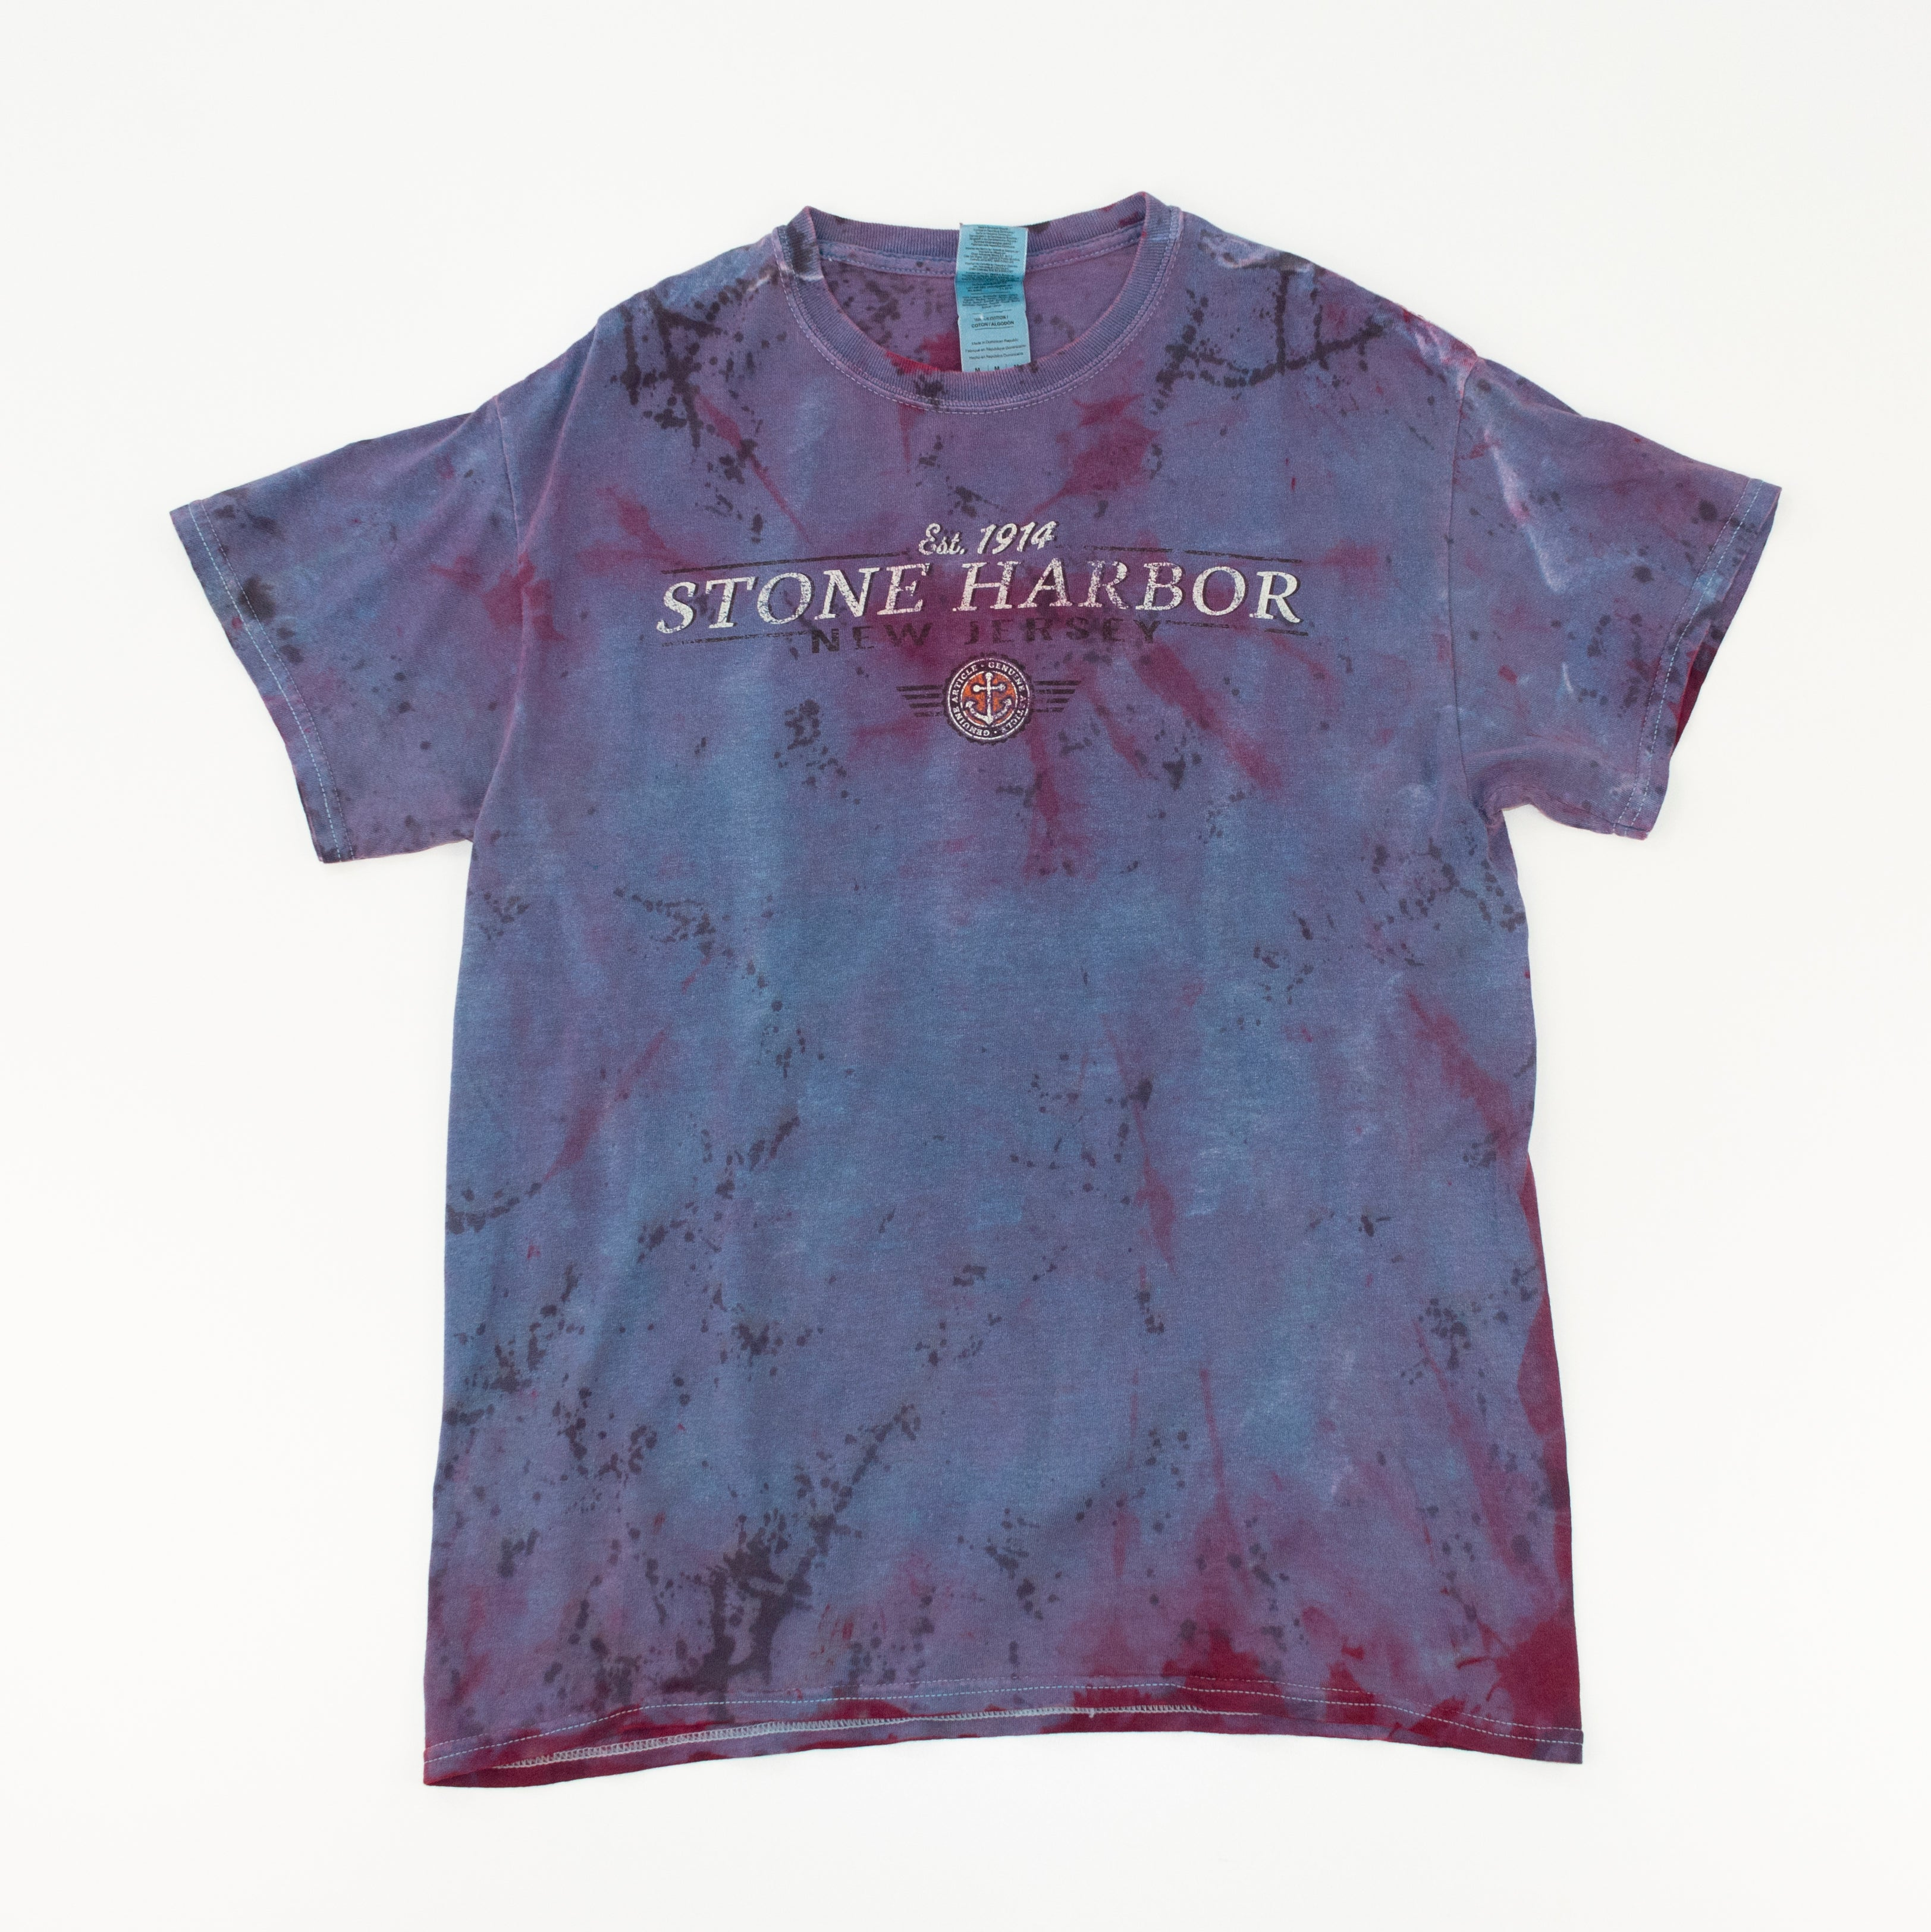 VNTG x Stone Harbor T-Shirt